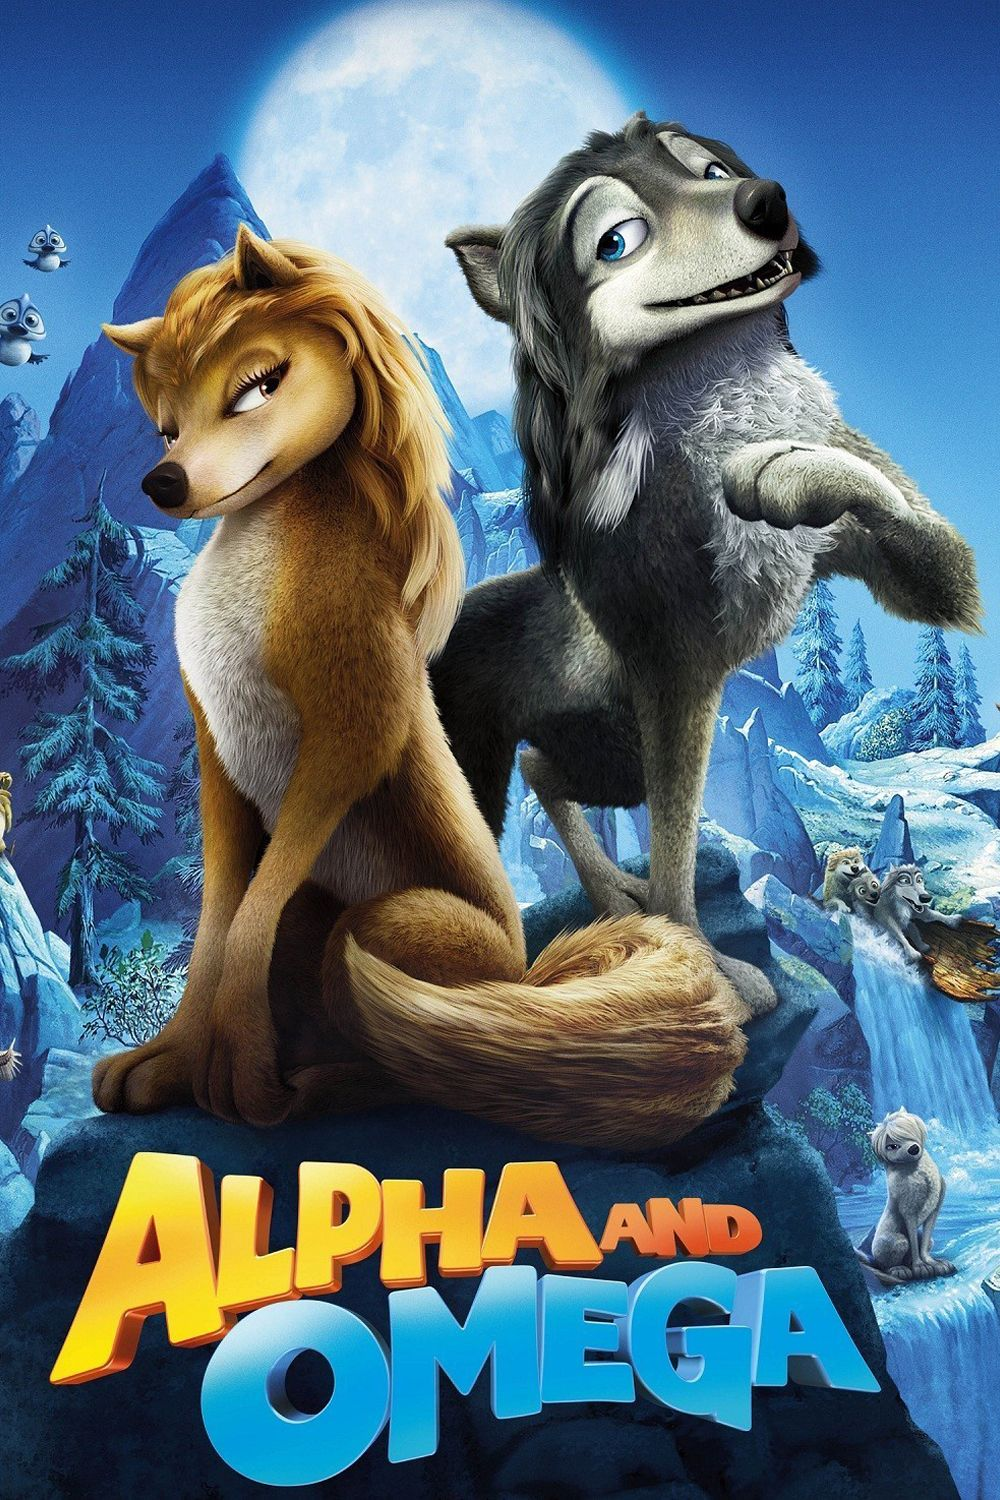 alpha and omega 2 full movie free no download